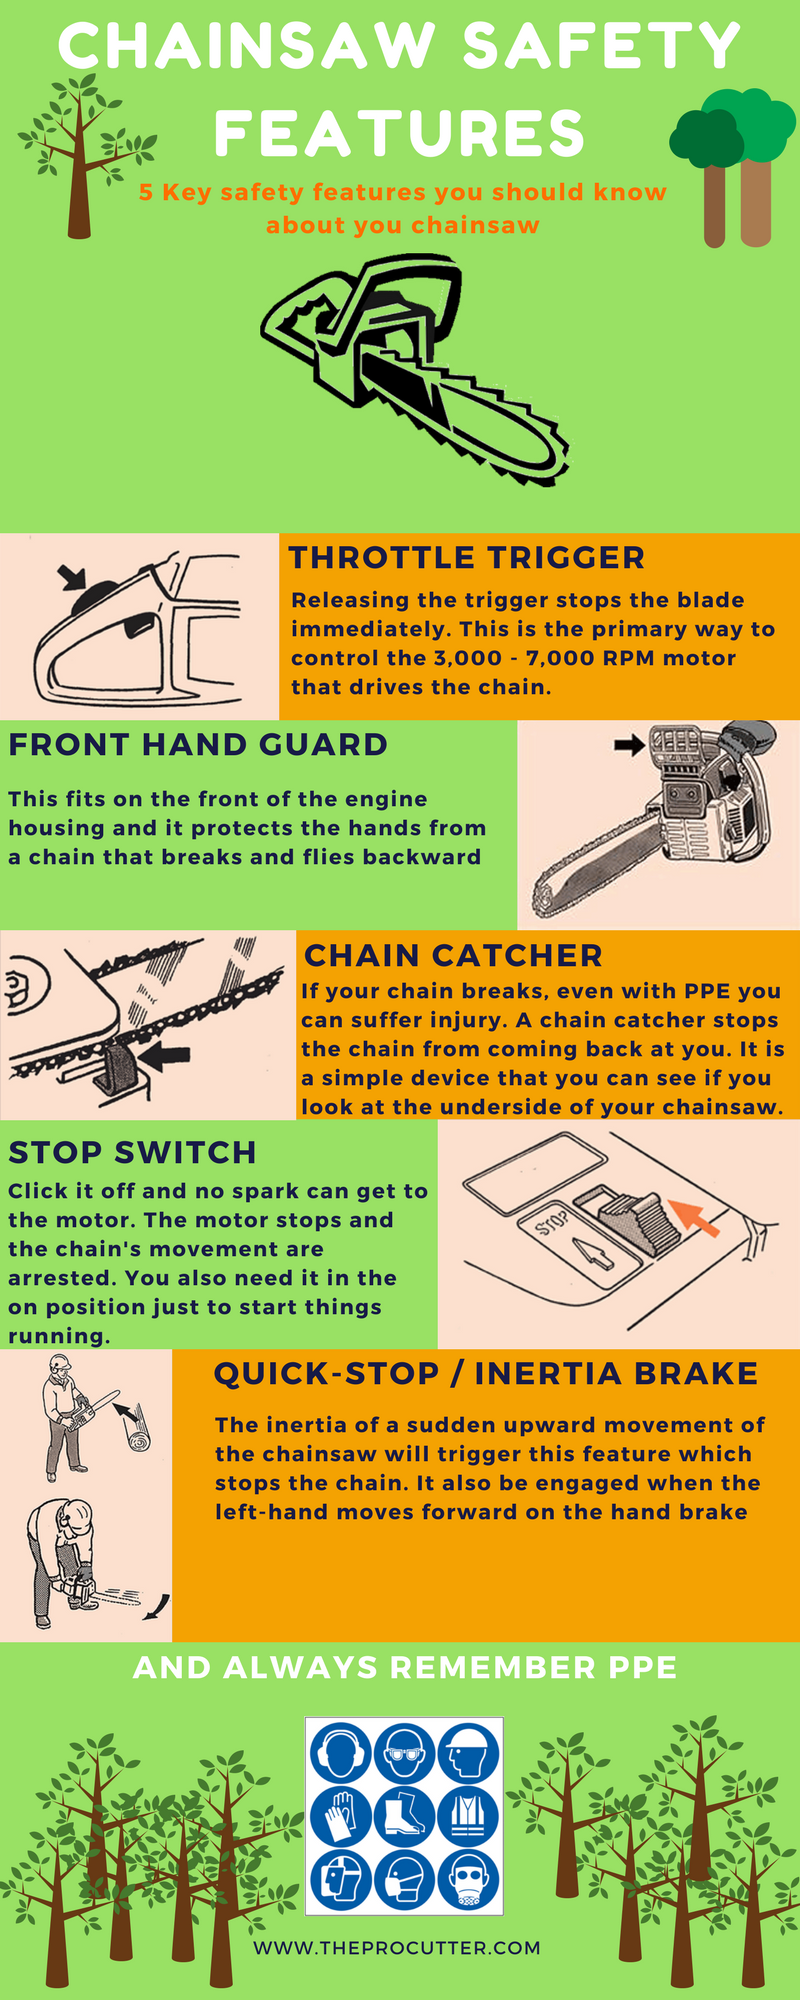 Chainsaw safety the cutting professionals chainsaw safety info graphic greentooth Images